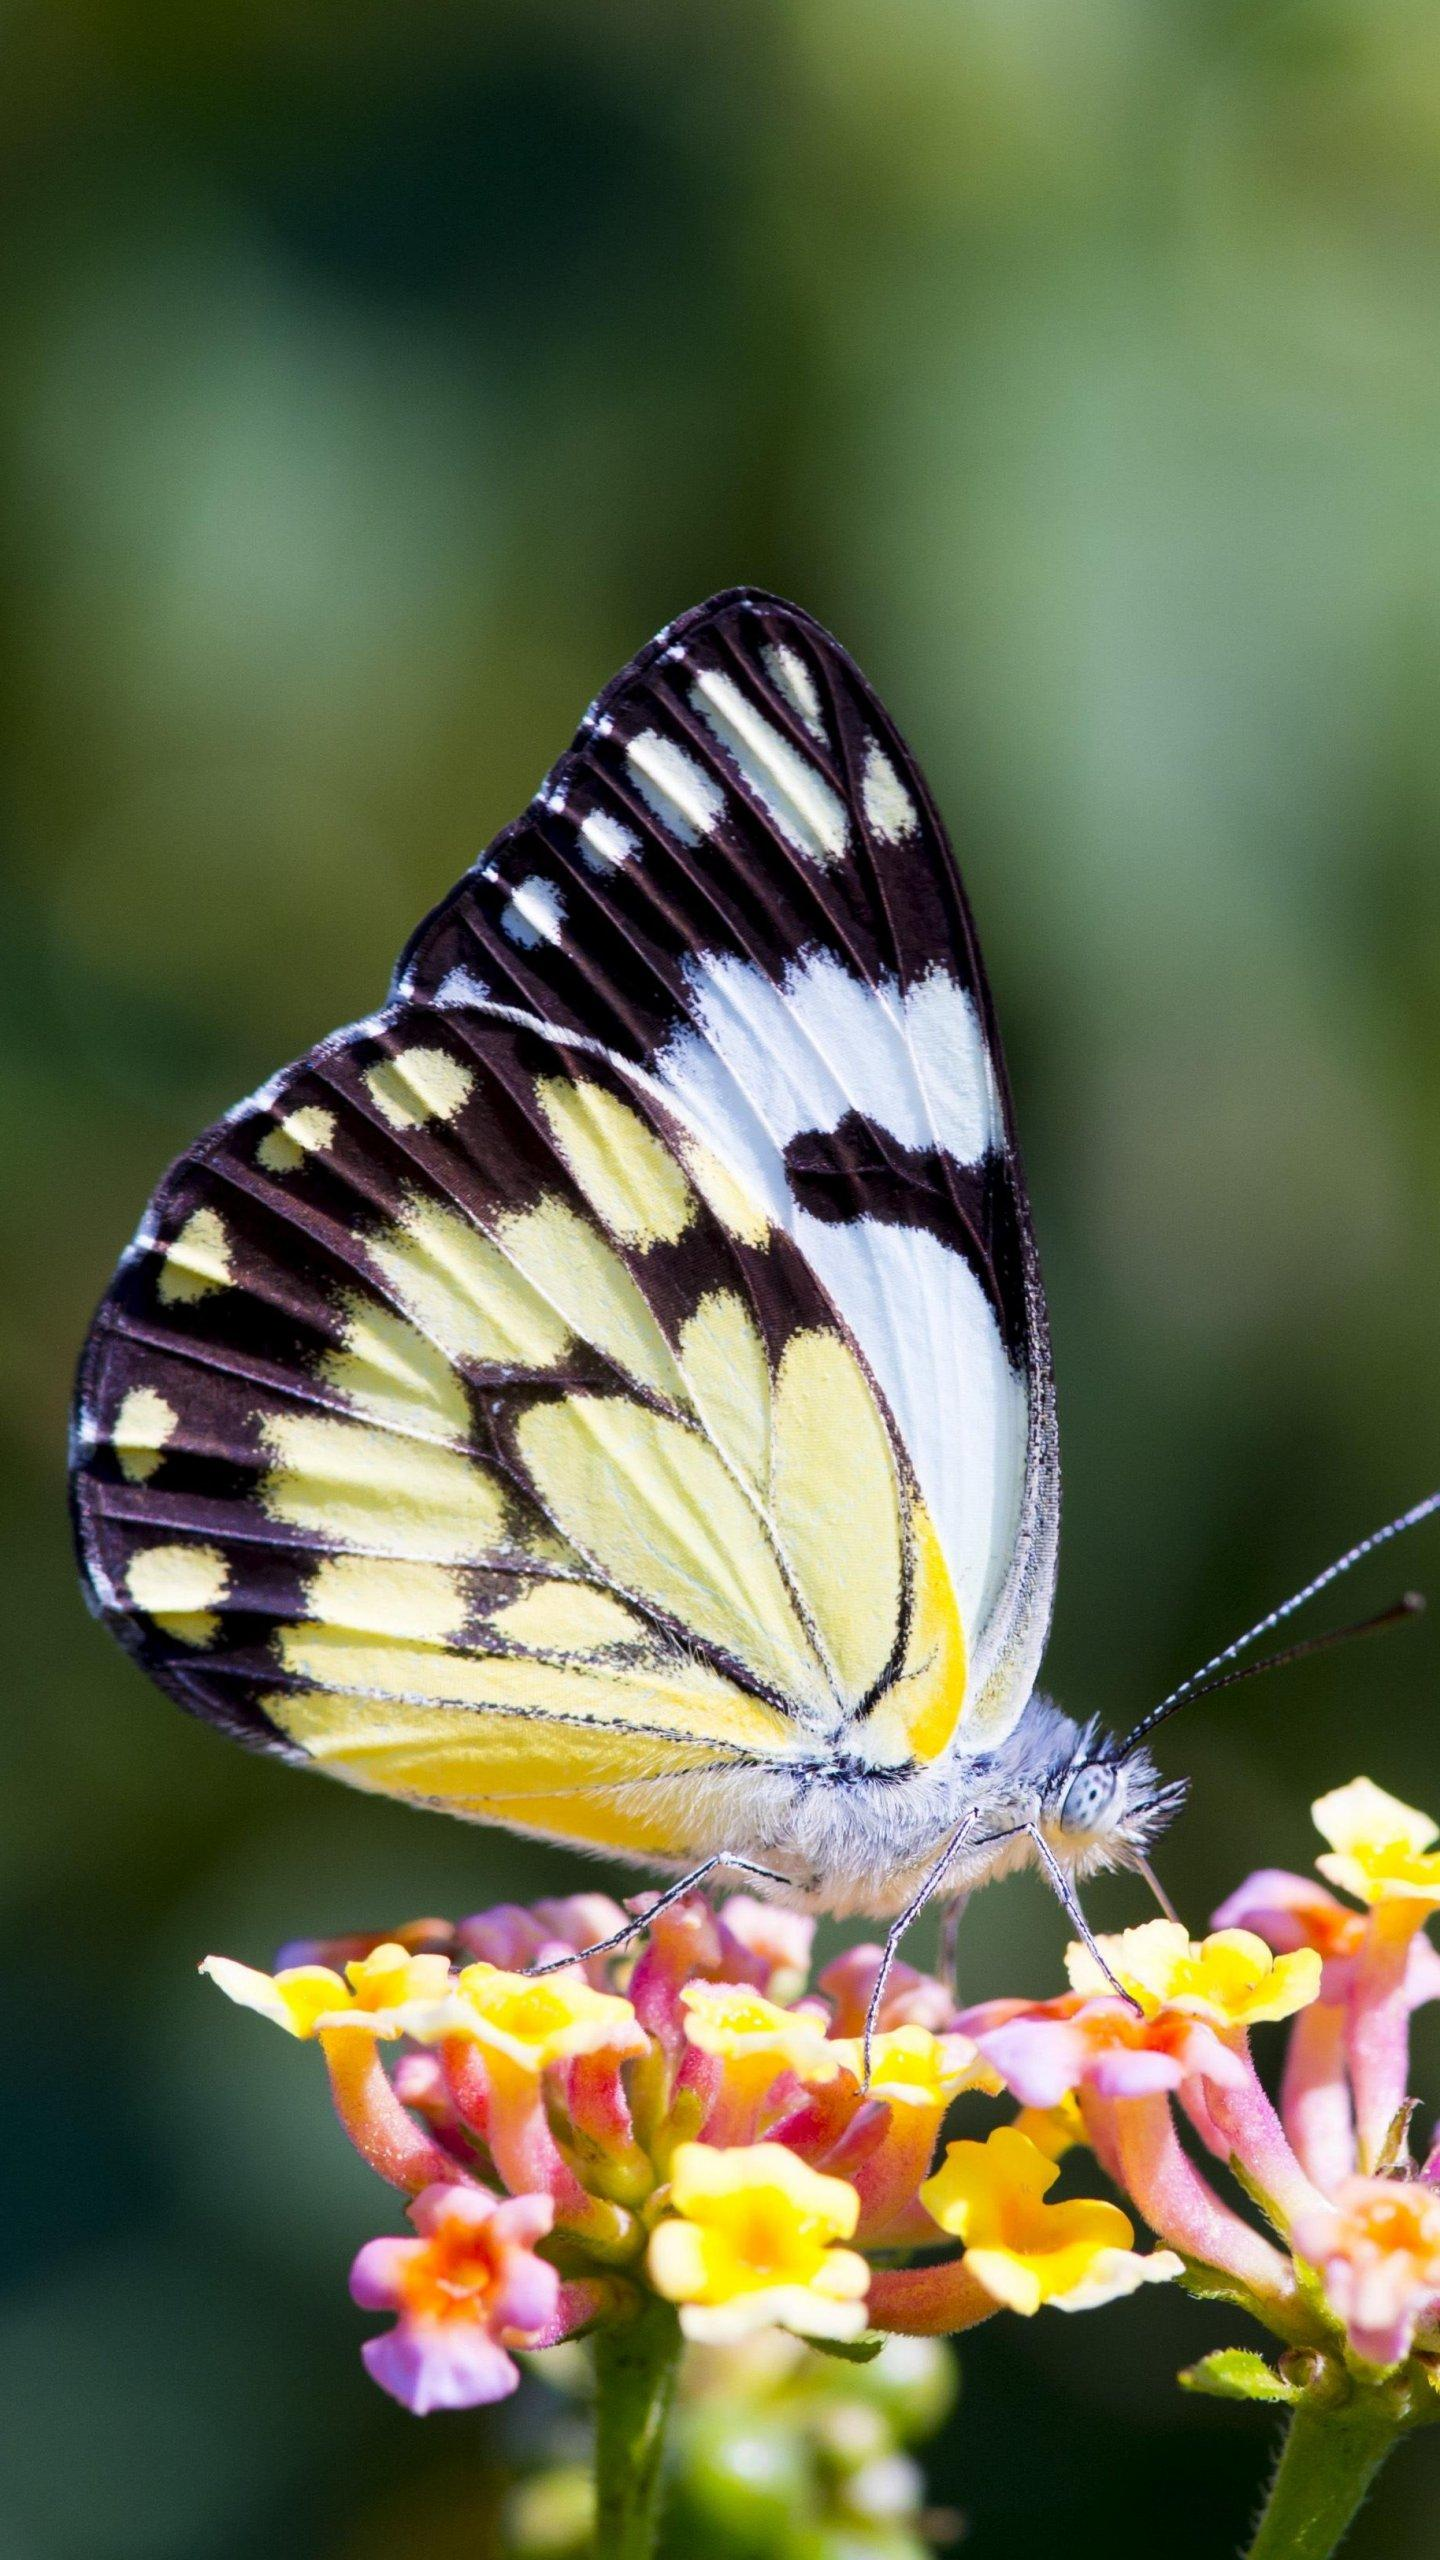 Butterfly On Flower Wallpapers - Wallpaper Cave